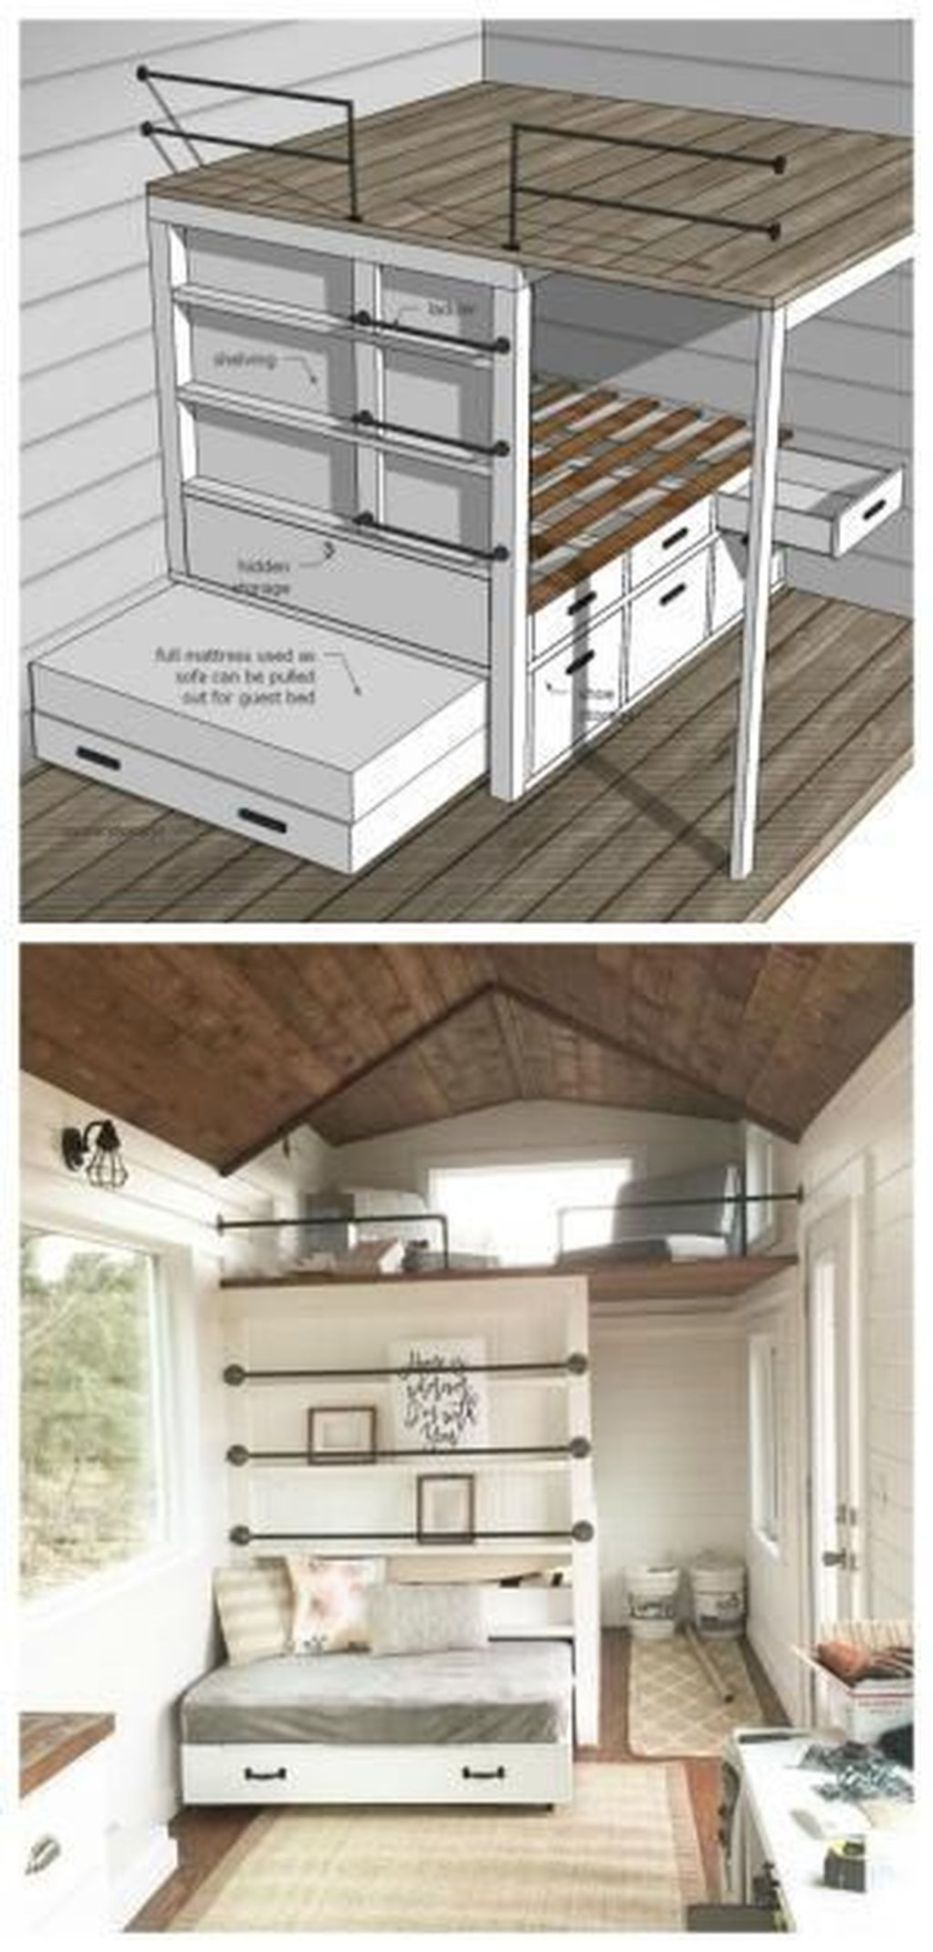 enchanting hidden bed furniture double creative wall | 60+ Tiny House Storage Hacks and Ideas | Tiny house ...